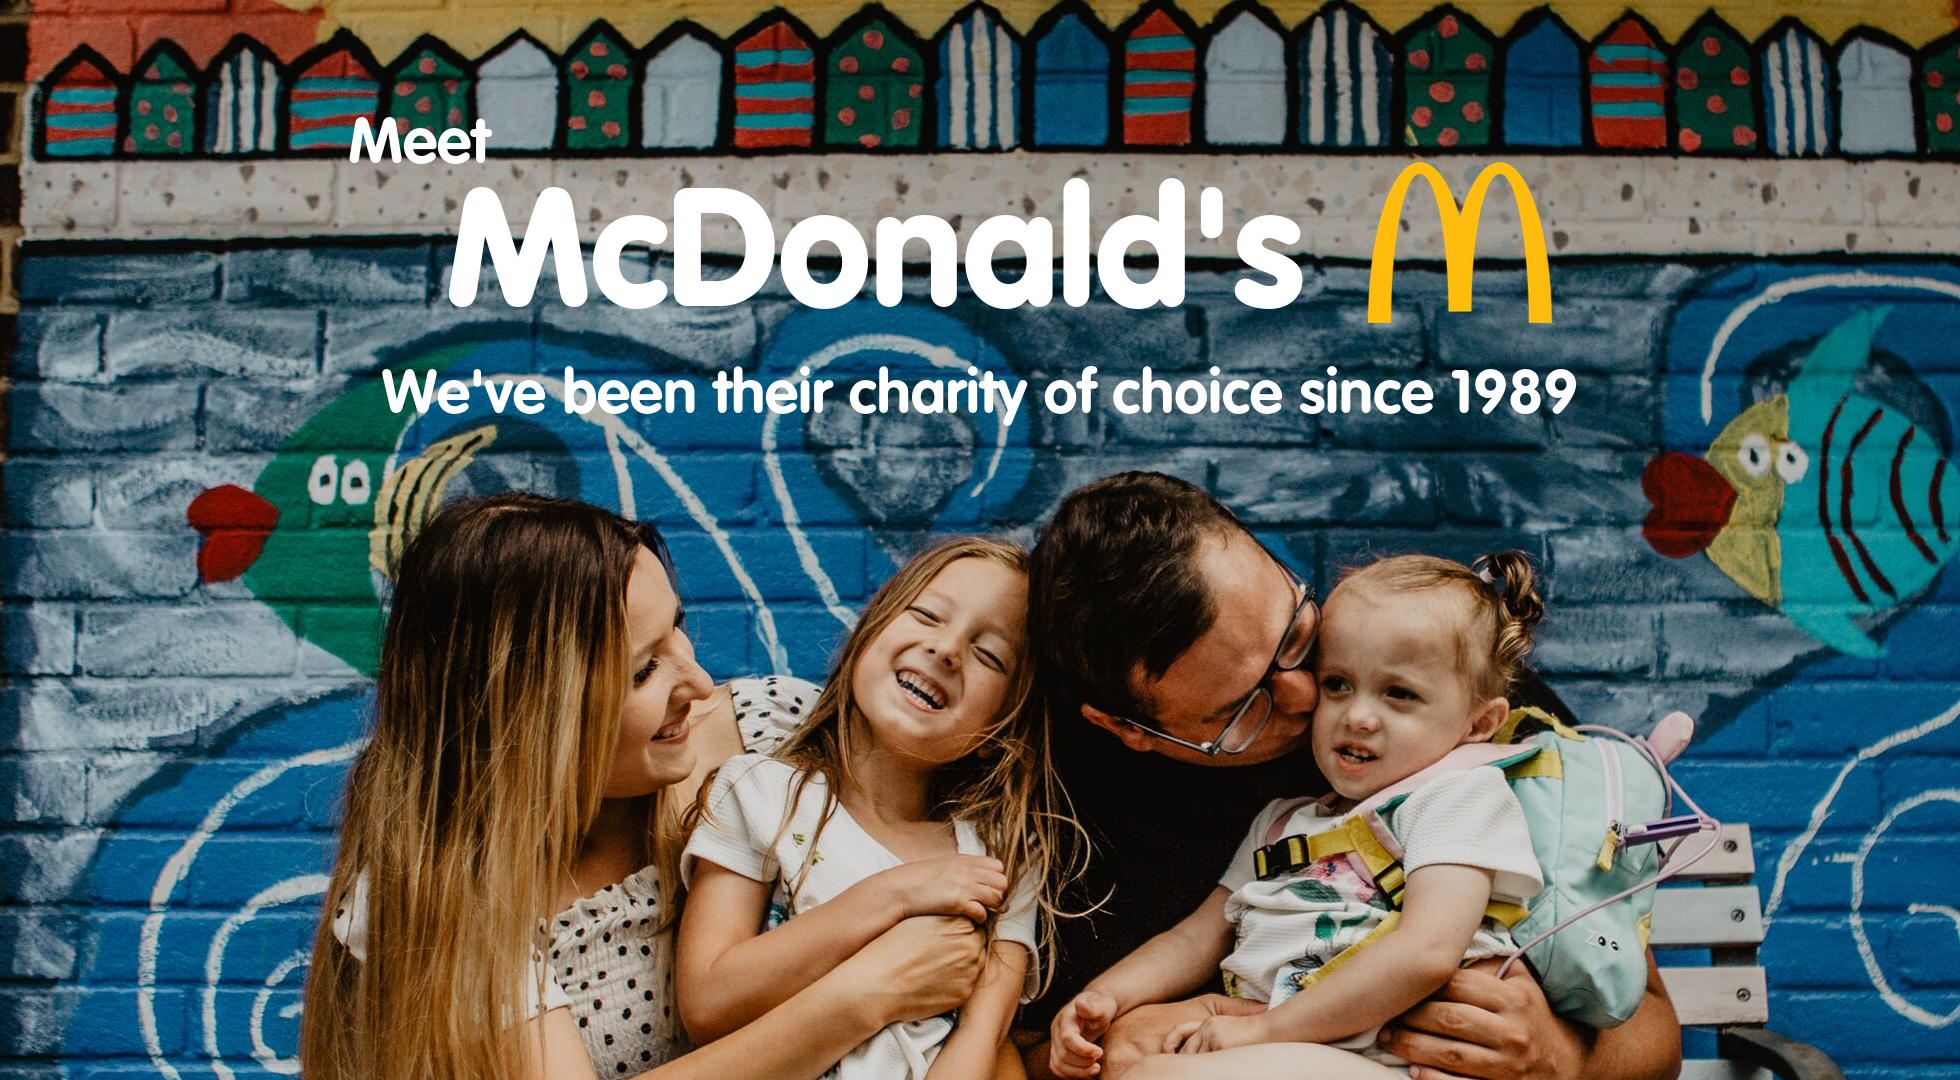 charity of choice mcdonald's and ronald mcdonald house charities